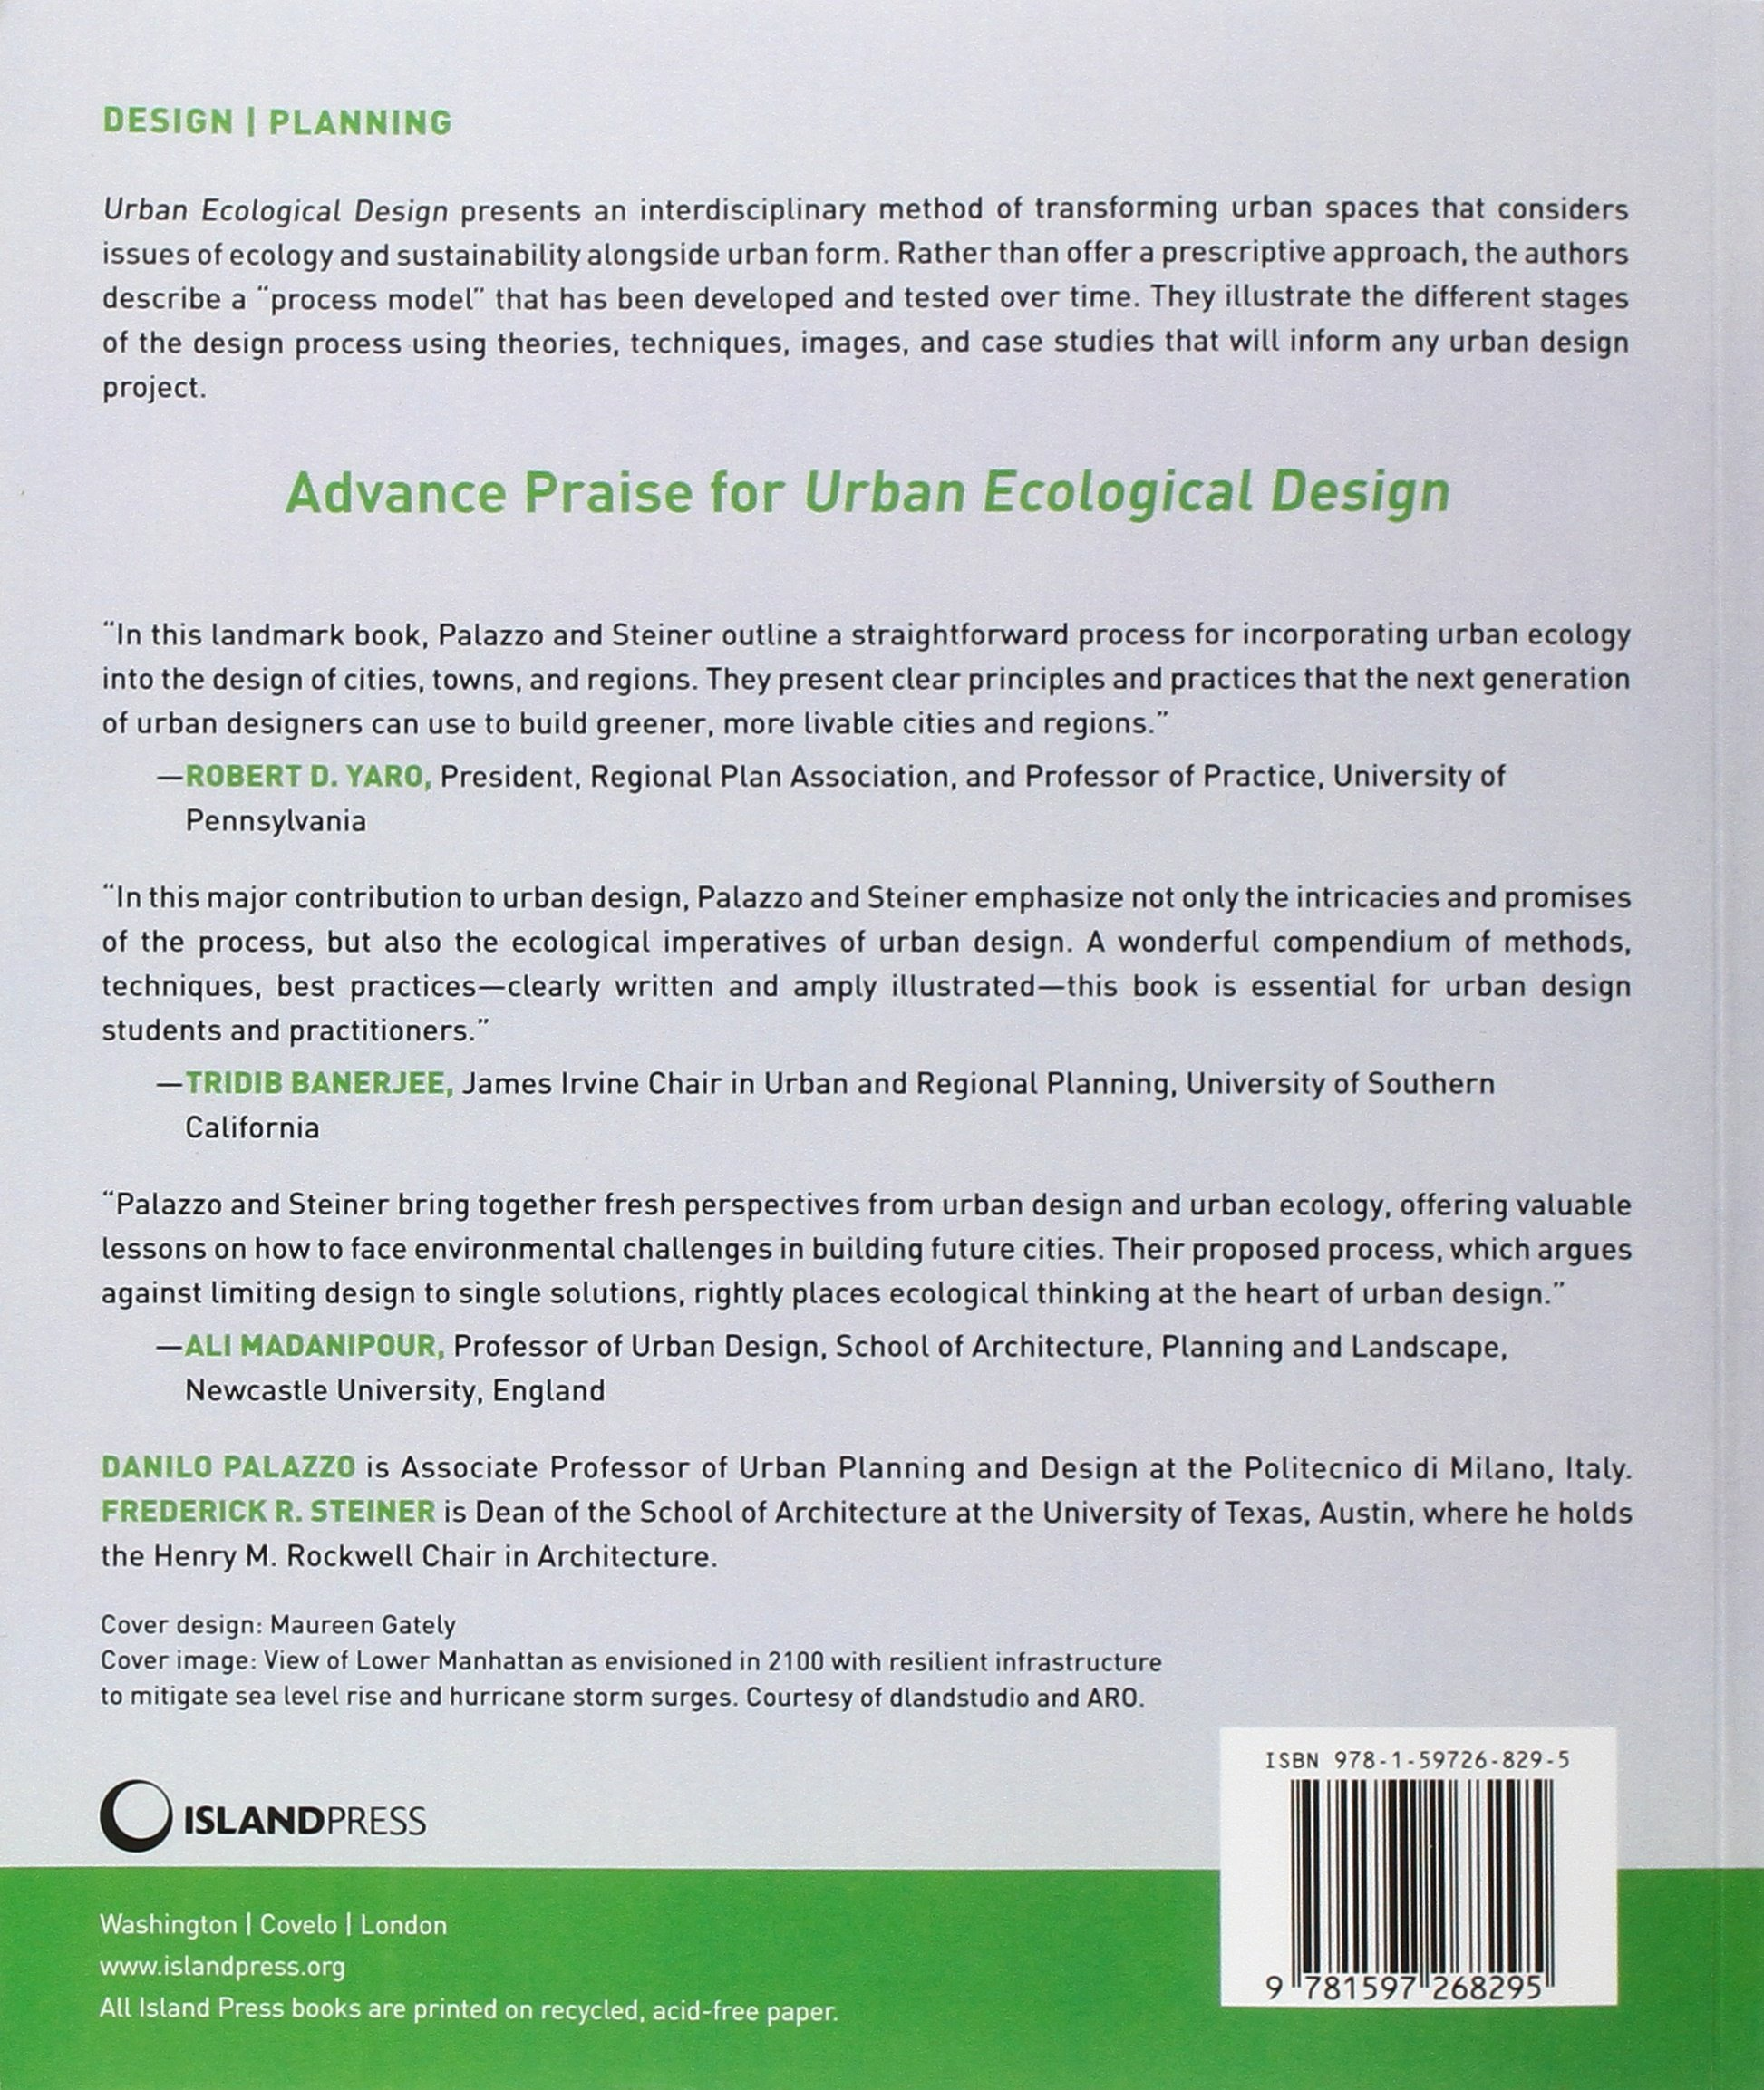 Urban Ecological Design: A Process for Regenerative Places: Amazon.co.uk:  Danilo Palazzo, Frederick Steiner: 9781597268295: Books